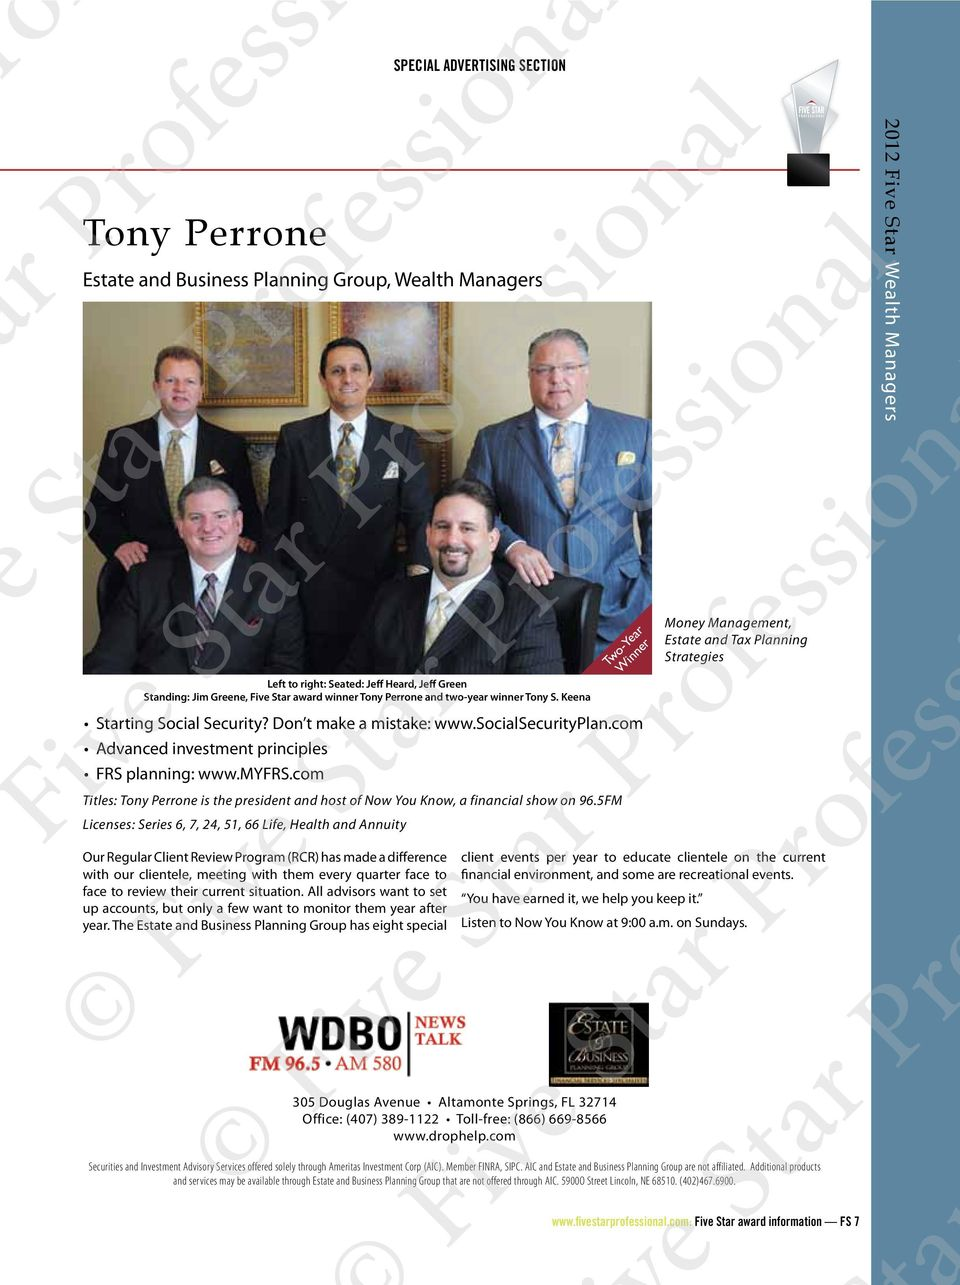 com Titles: Tony Perrone is the president and host of Now You Know, a financial show on 96.